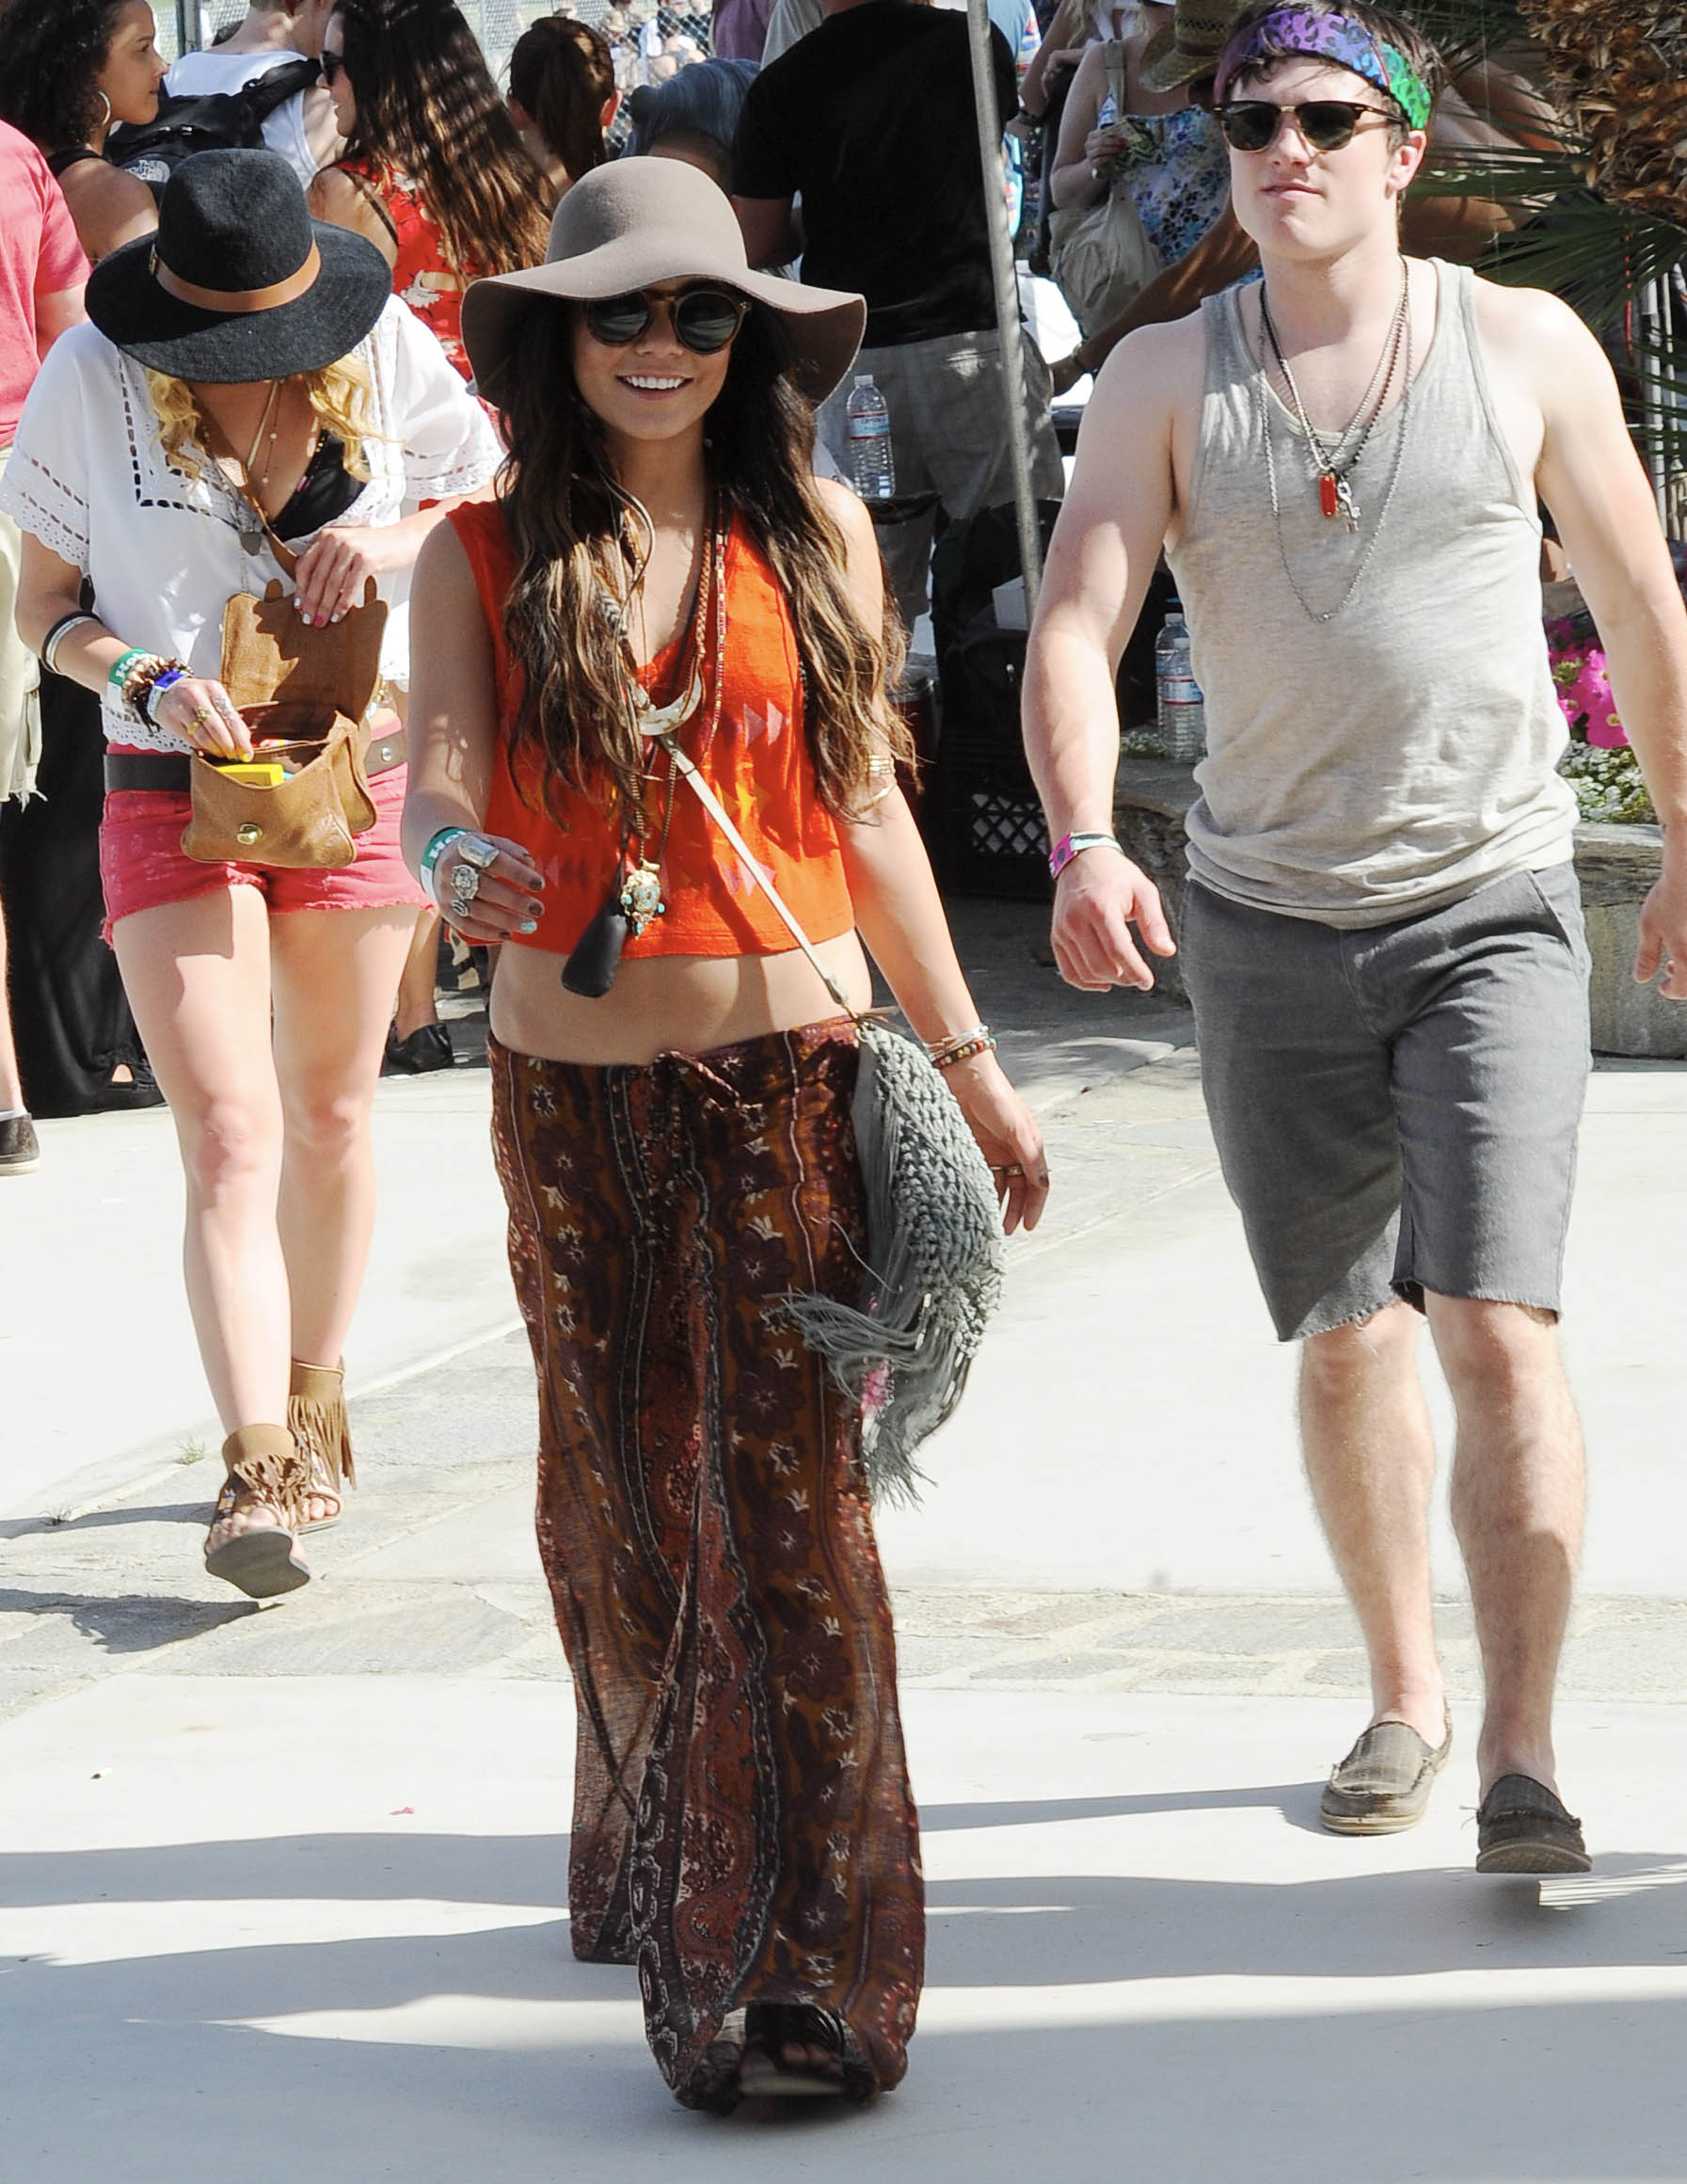 Vanessa Hudgens showed off her hippie style in 2011.